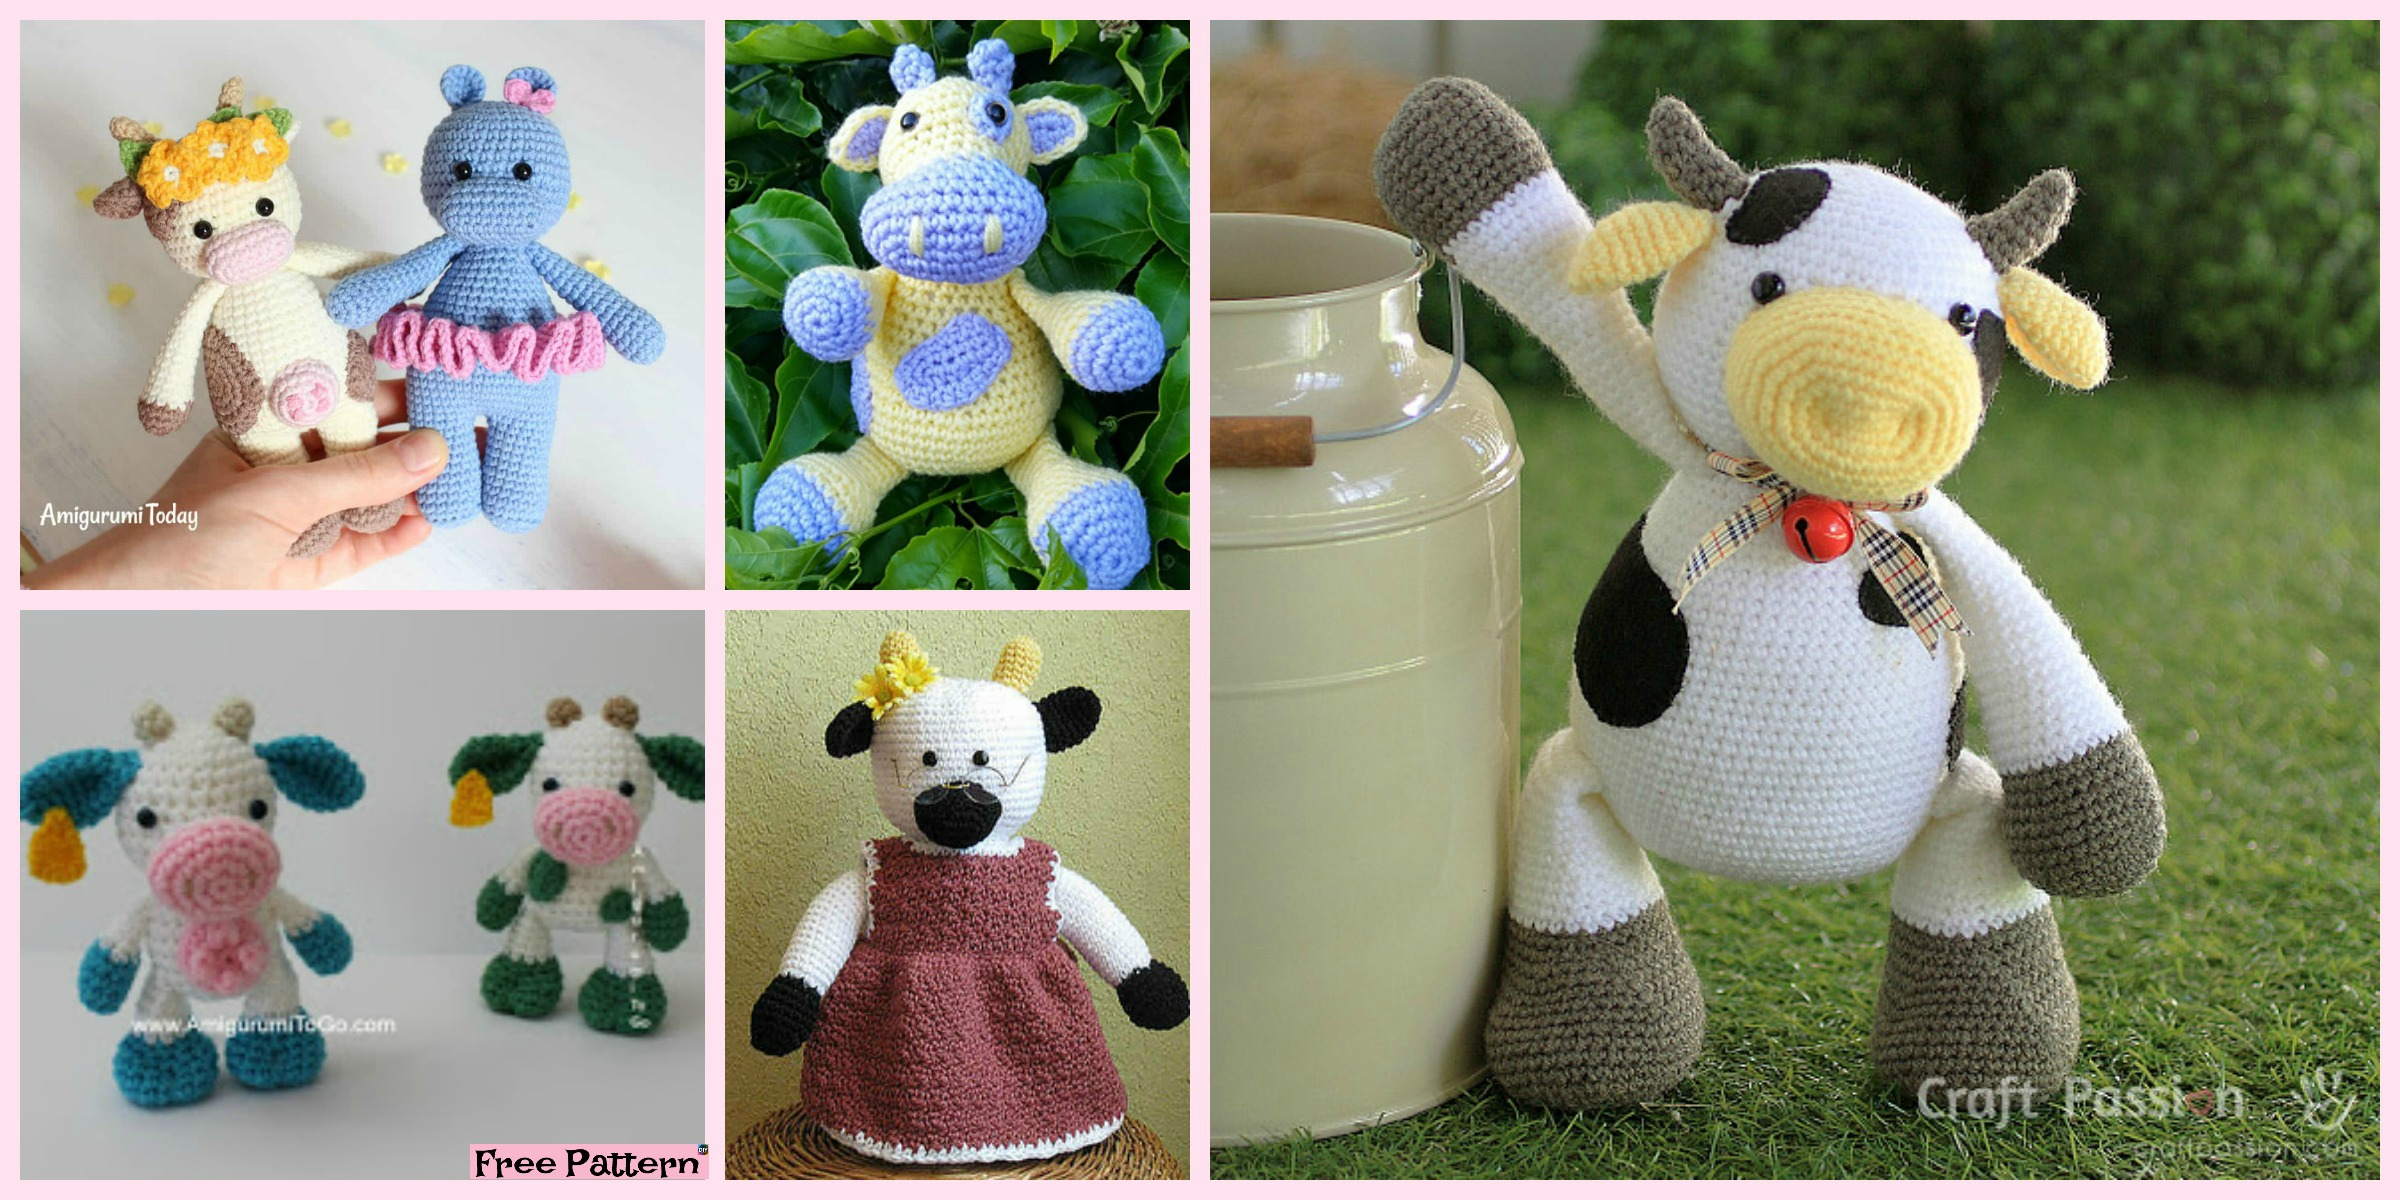 6 Super Cute Crocheted Amigurumi Cow Free Patterns